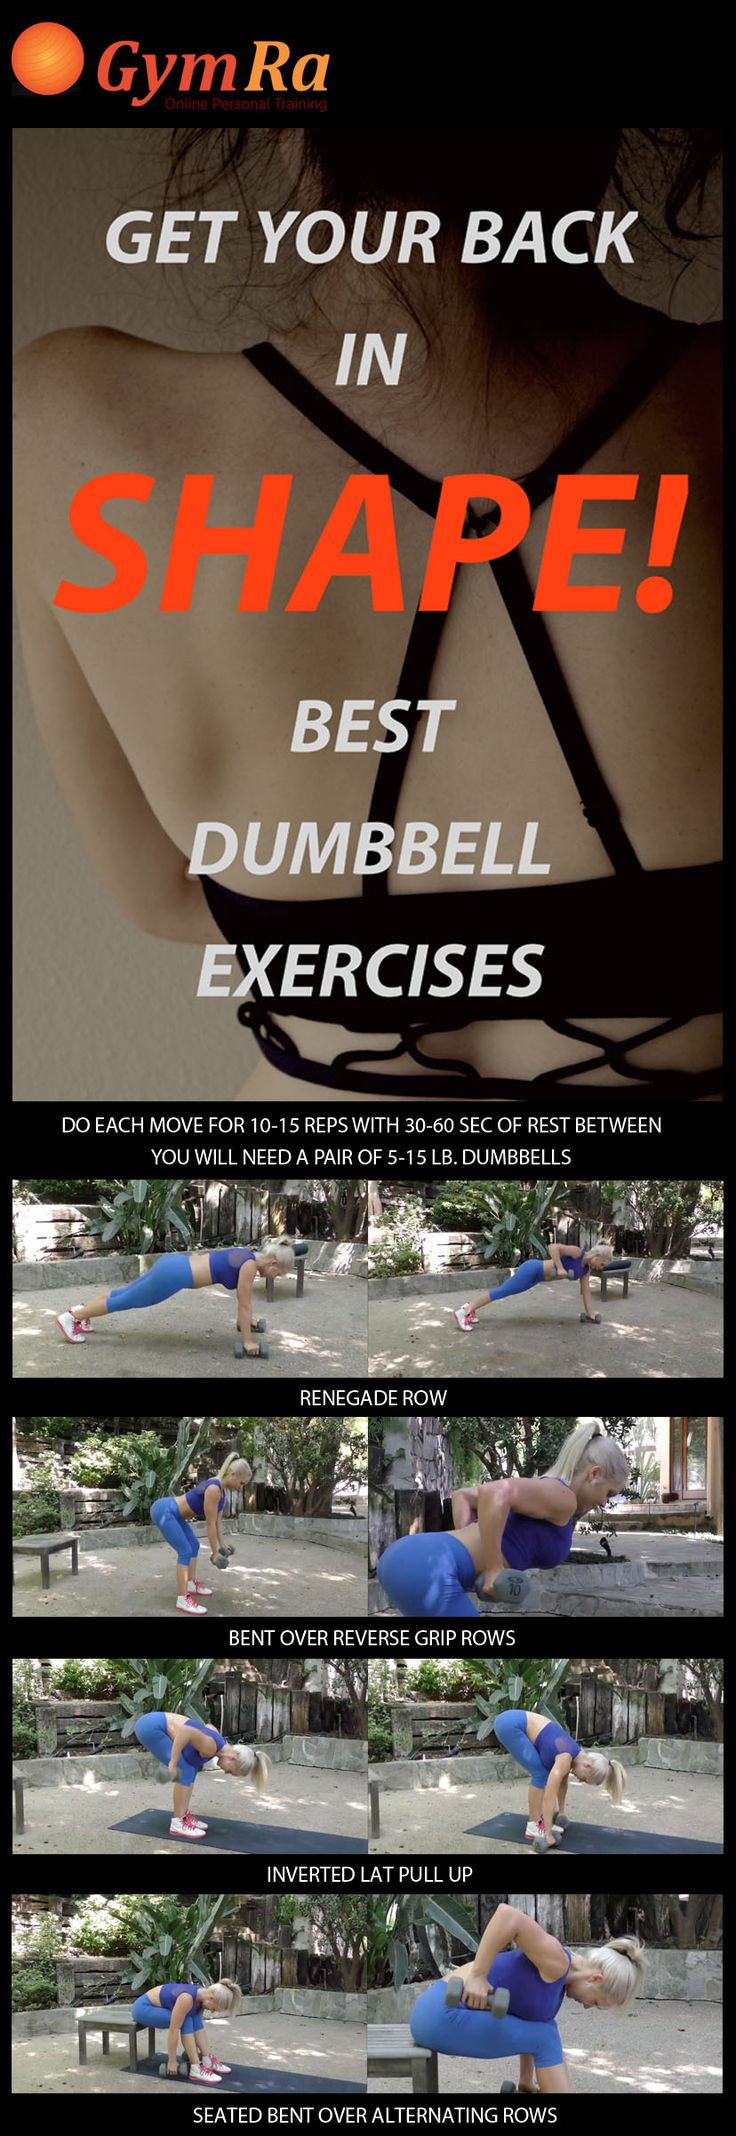 Lose back fat while slimming, sculpting, and strengthening your upper body. Get ready to rock strapless & backless numbers proudly! Do each move for 10-15 reps with 30-60 sec rest between. You will need a pair of 5-15 lb. dumbbells. #fitness #weightloss #fitspo #fitspiration